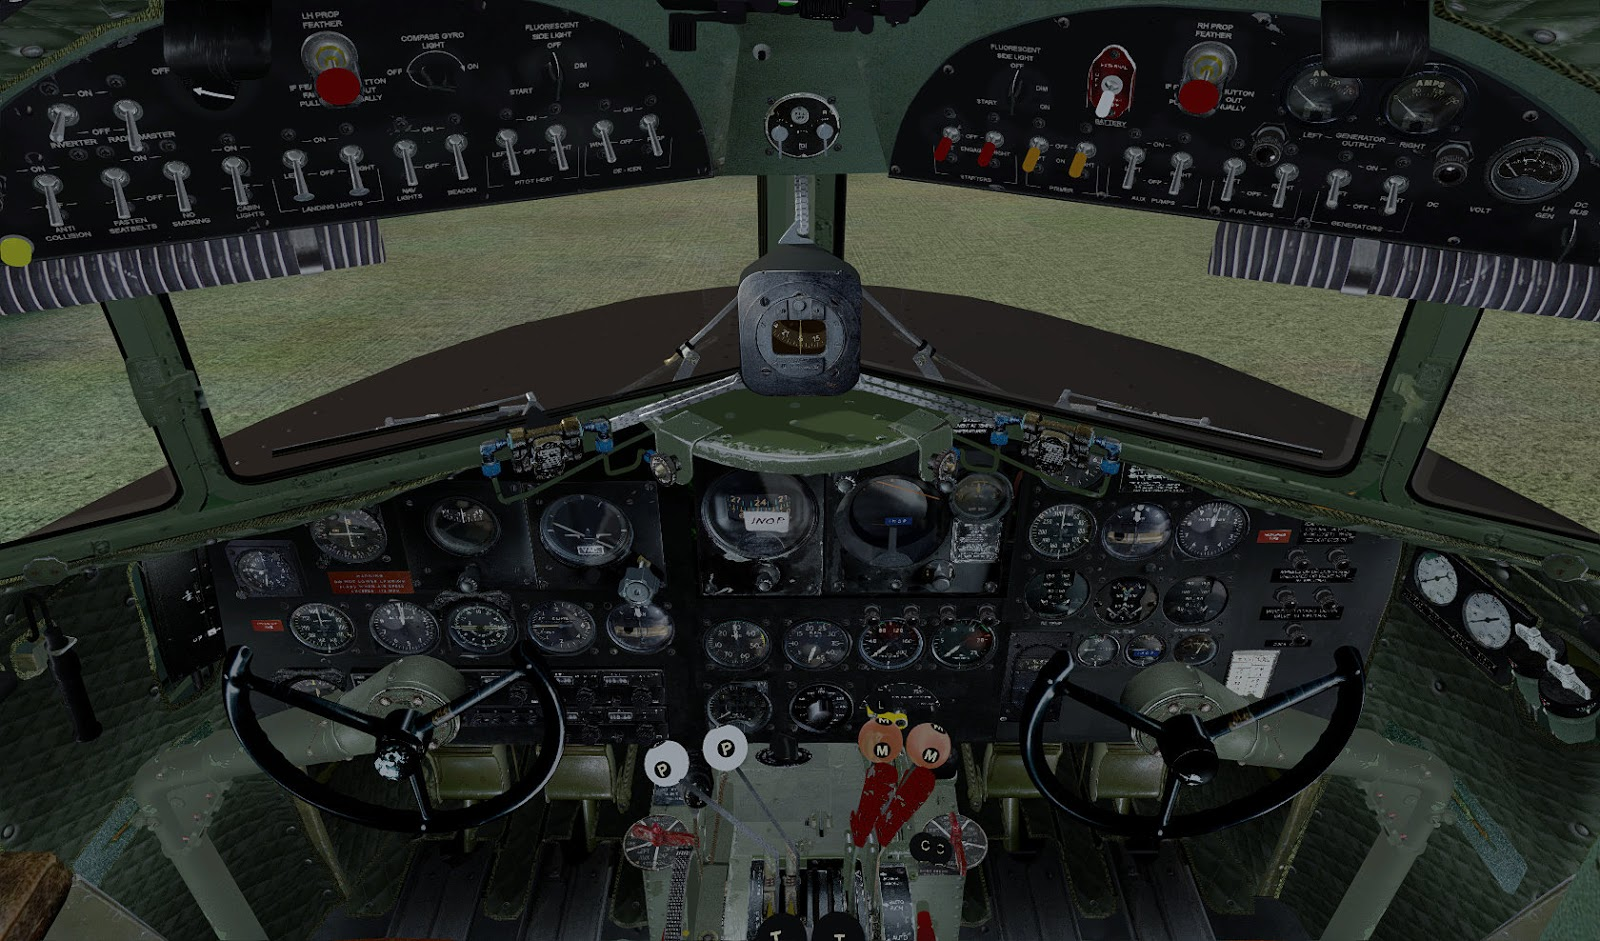 South West Flight Simulation: When Classic Art is Just Wright